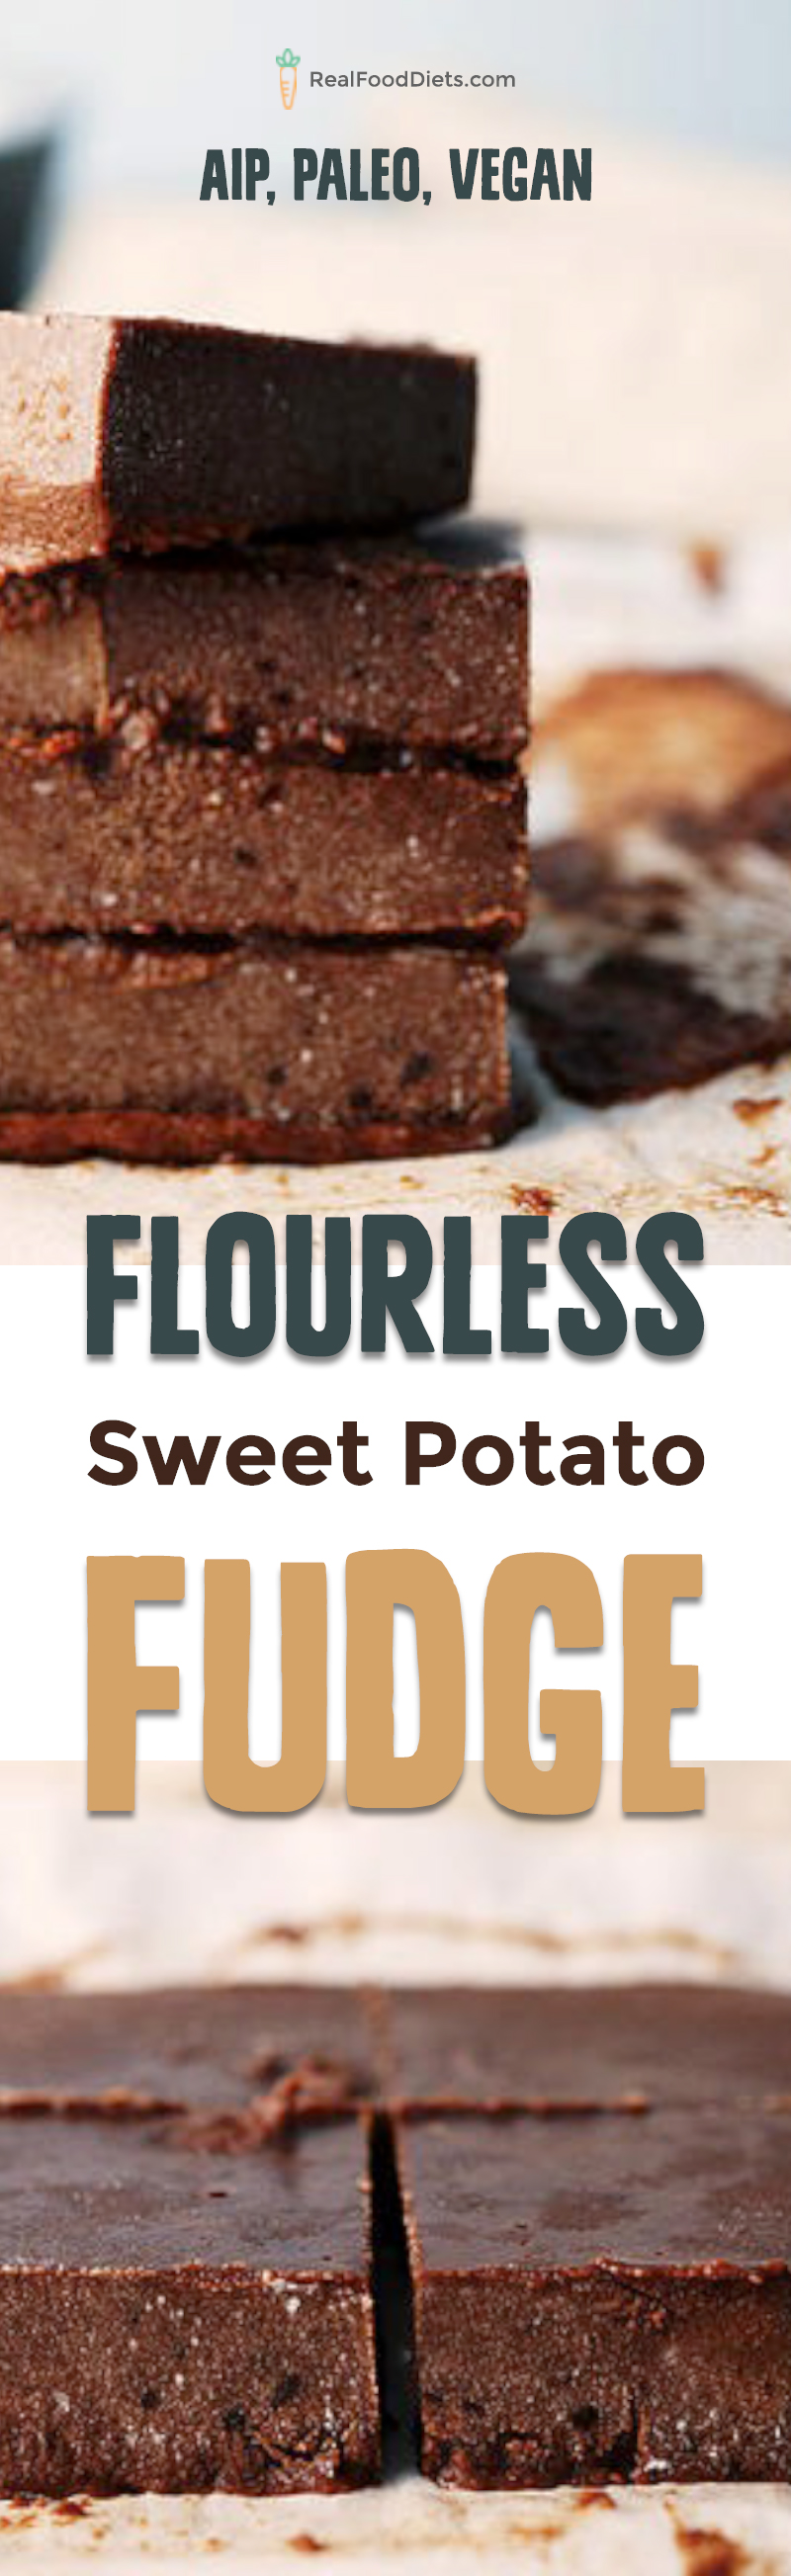 AIP sweet potato fudge that is smooth, creamy and rich made with carob instead of chocolate and sweetened with honey. Autoimmune protocol friendly and Paleo. @realfooddiets